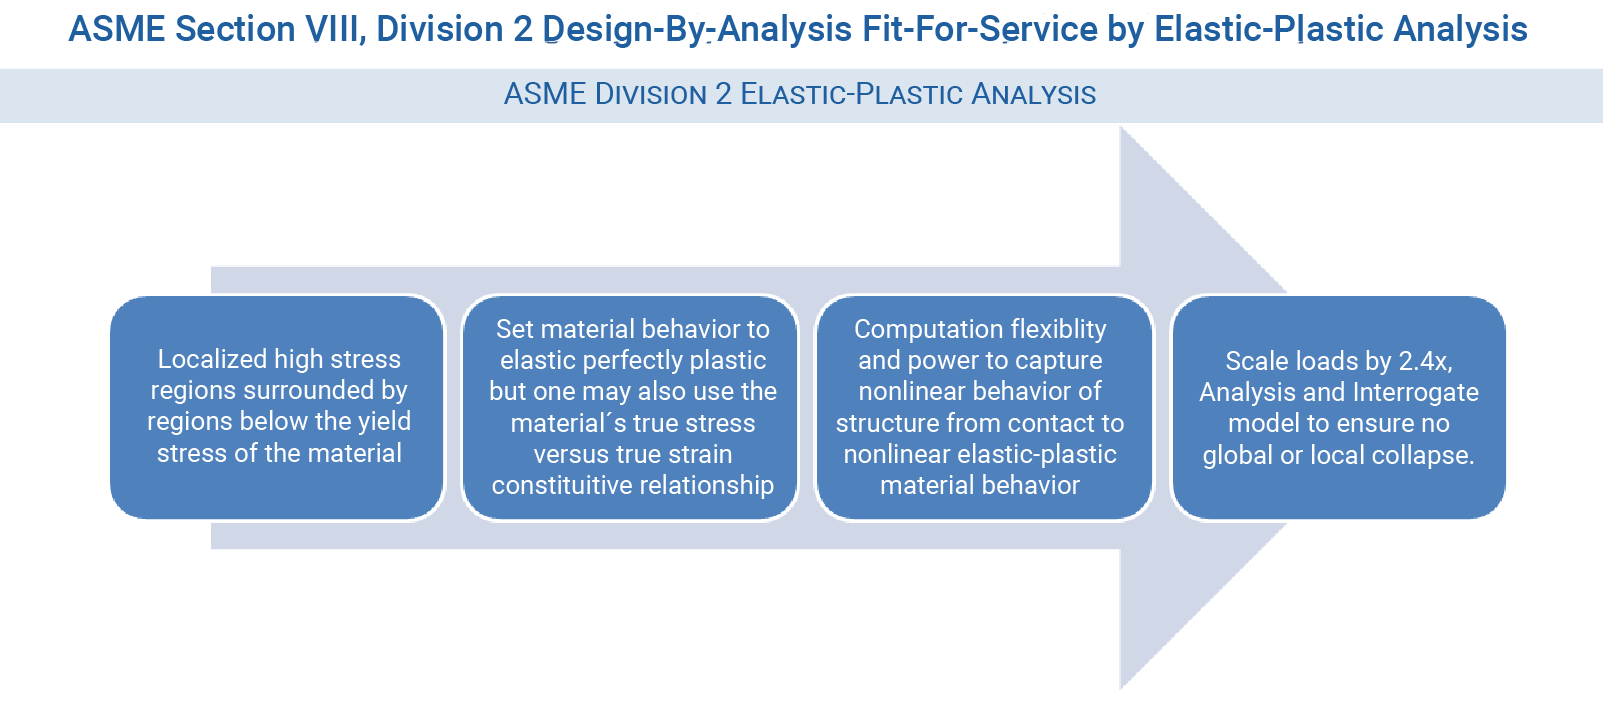 ASME Section VIII Div 2 Design-By-Analysis Elastic-Plastic FEA Classification